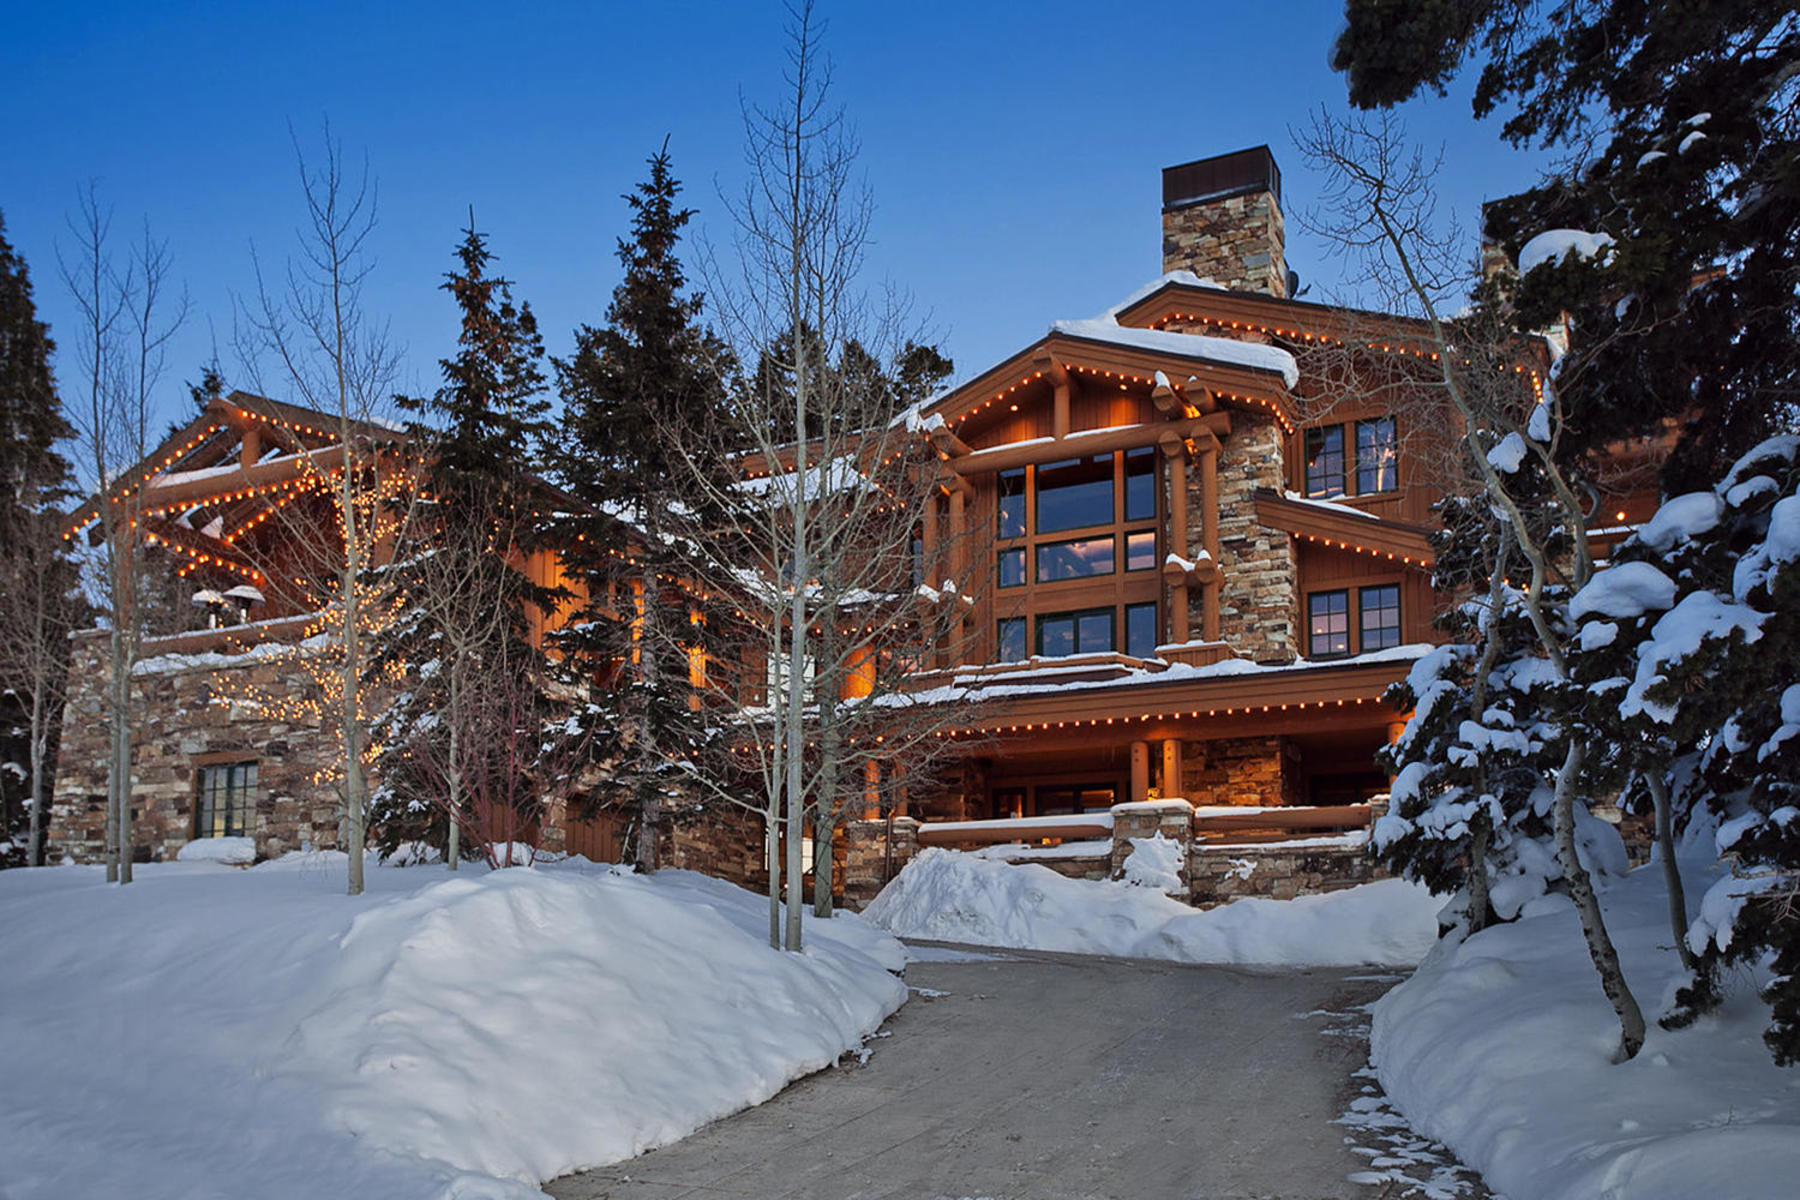 단독 가정 주택 용 매매 에 Magnificent Bald Eagle Ski Lodge Home 7831 Hawk Ct Park City, 유타, 84060 미국